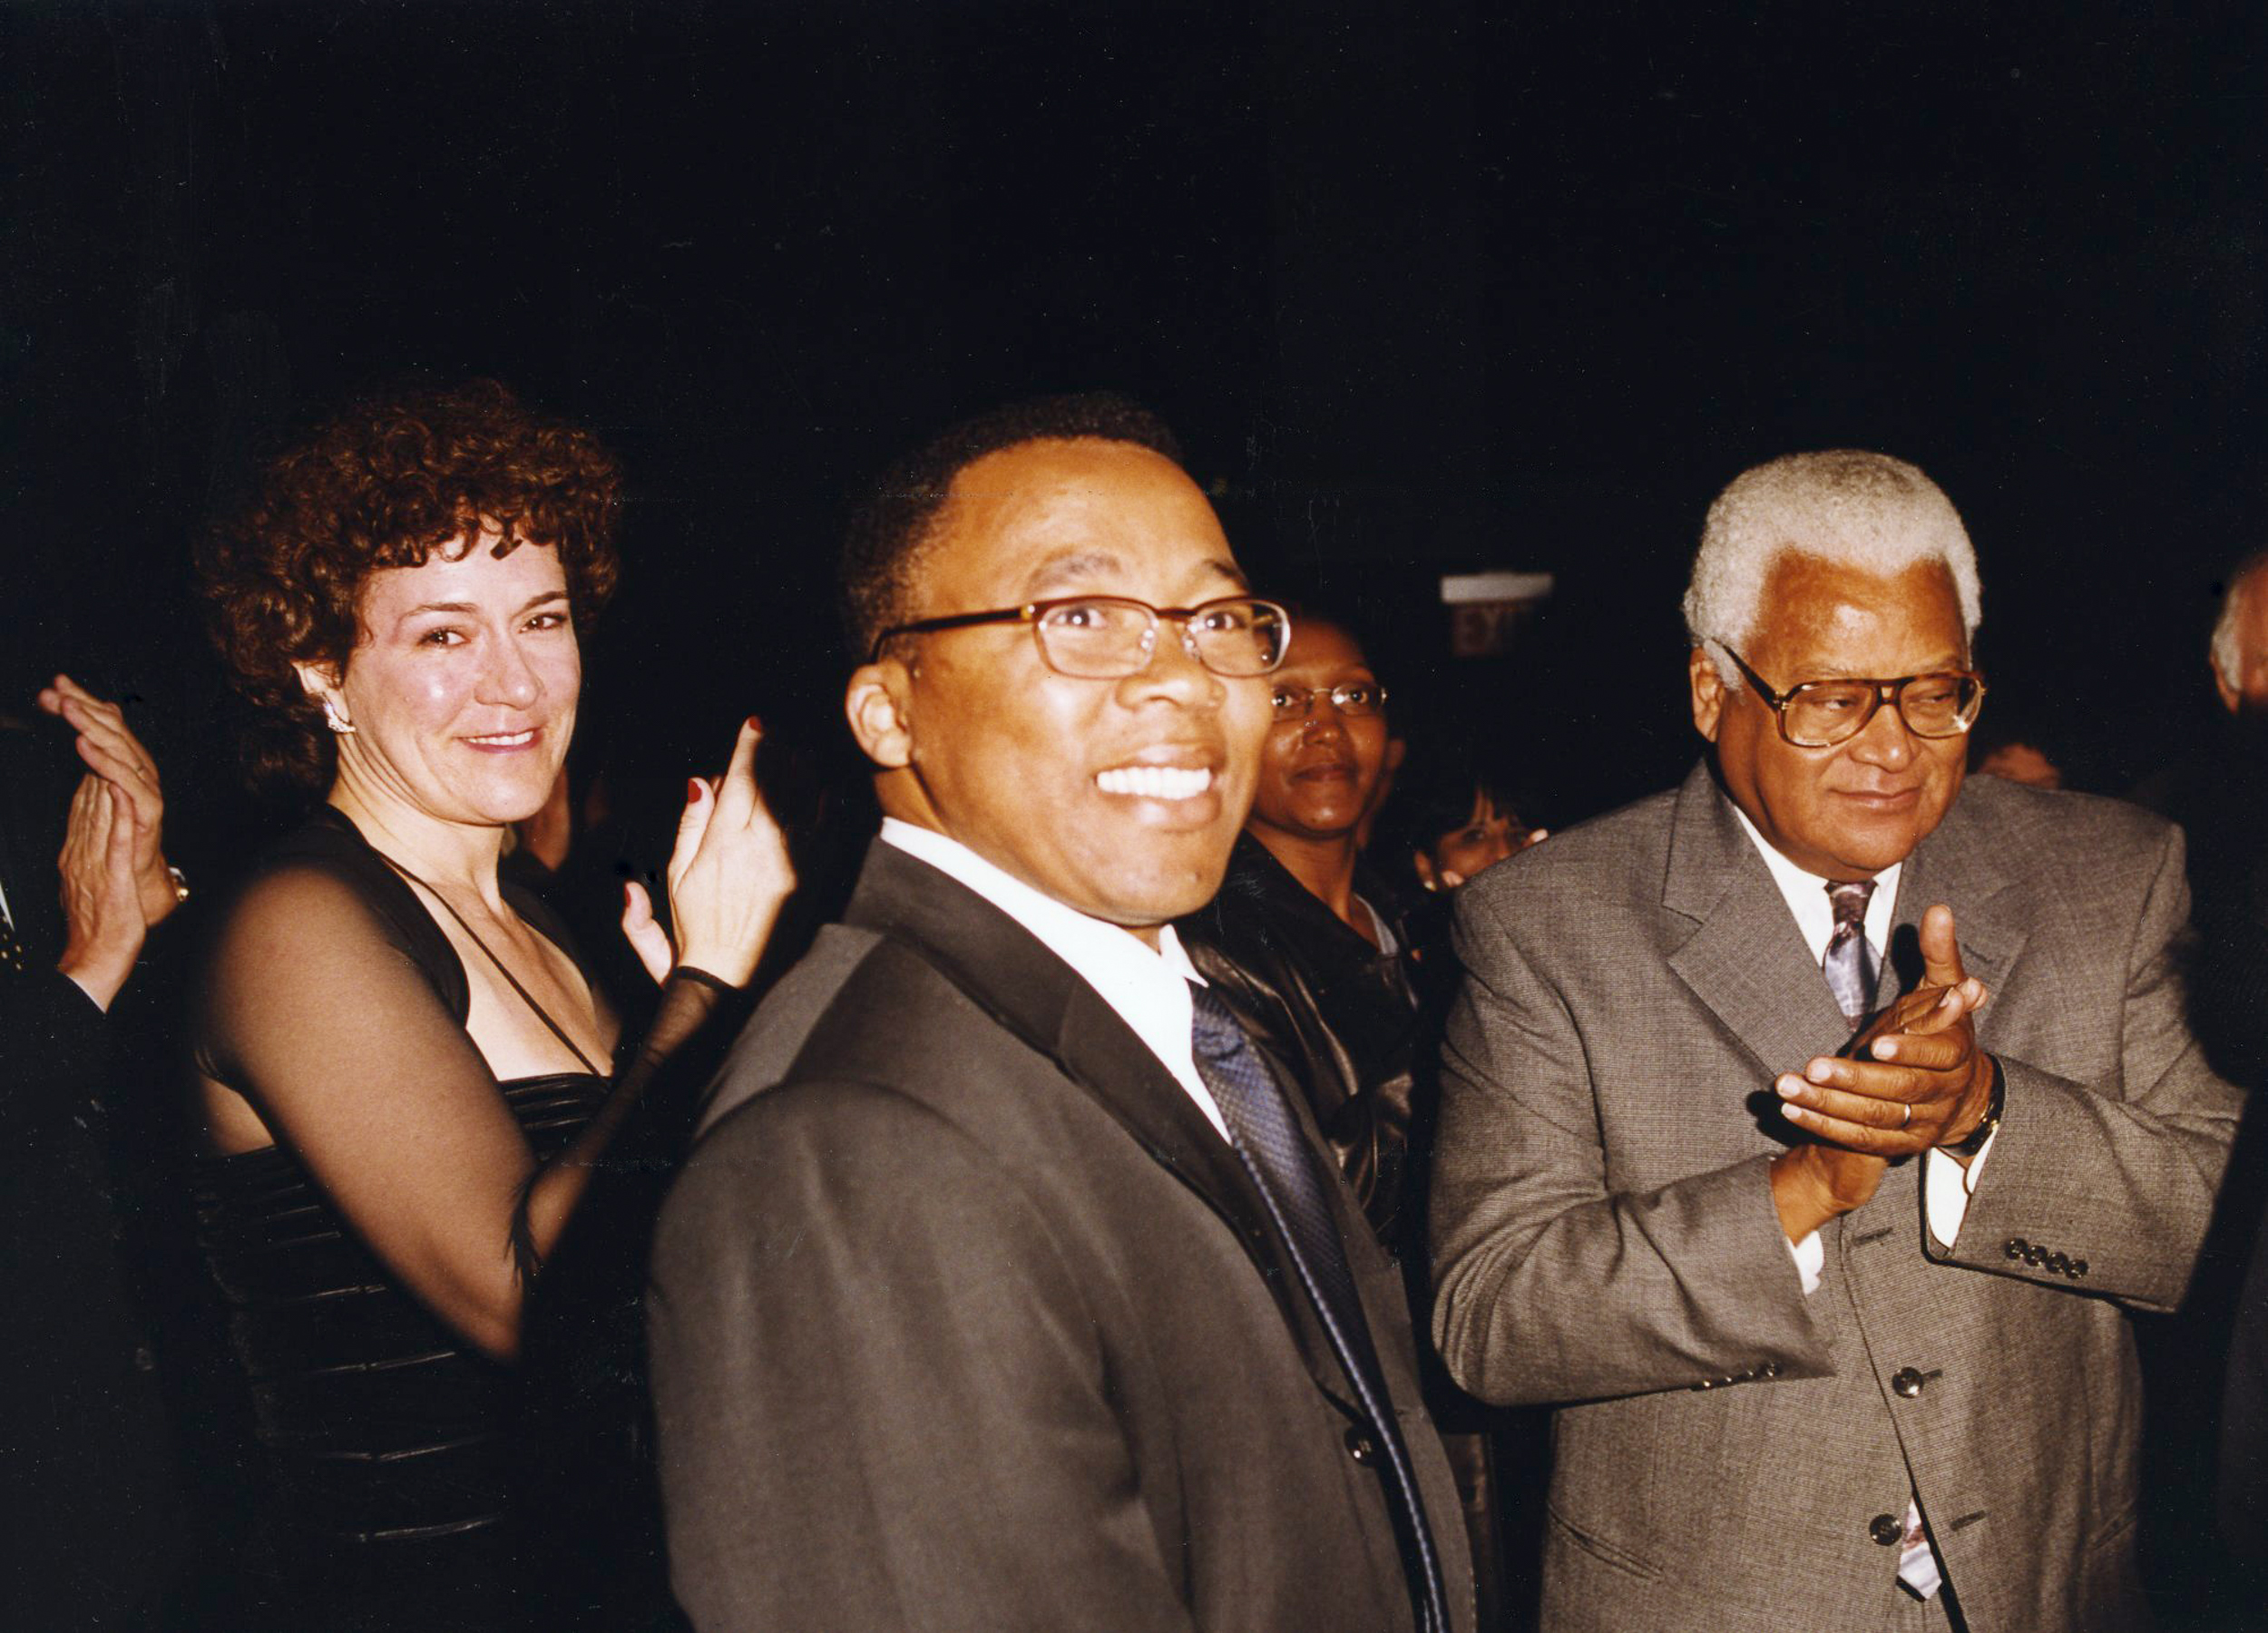 At the     A Force More Powerful     premiere in 2000 with civil resistance leaders, Mkhuseli Jack, and Rev. James Lawson.